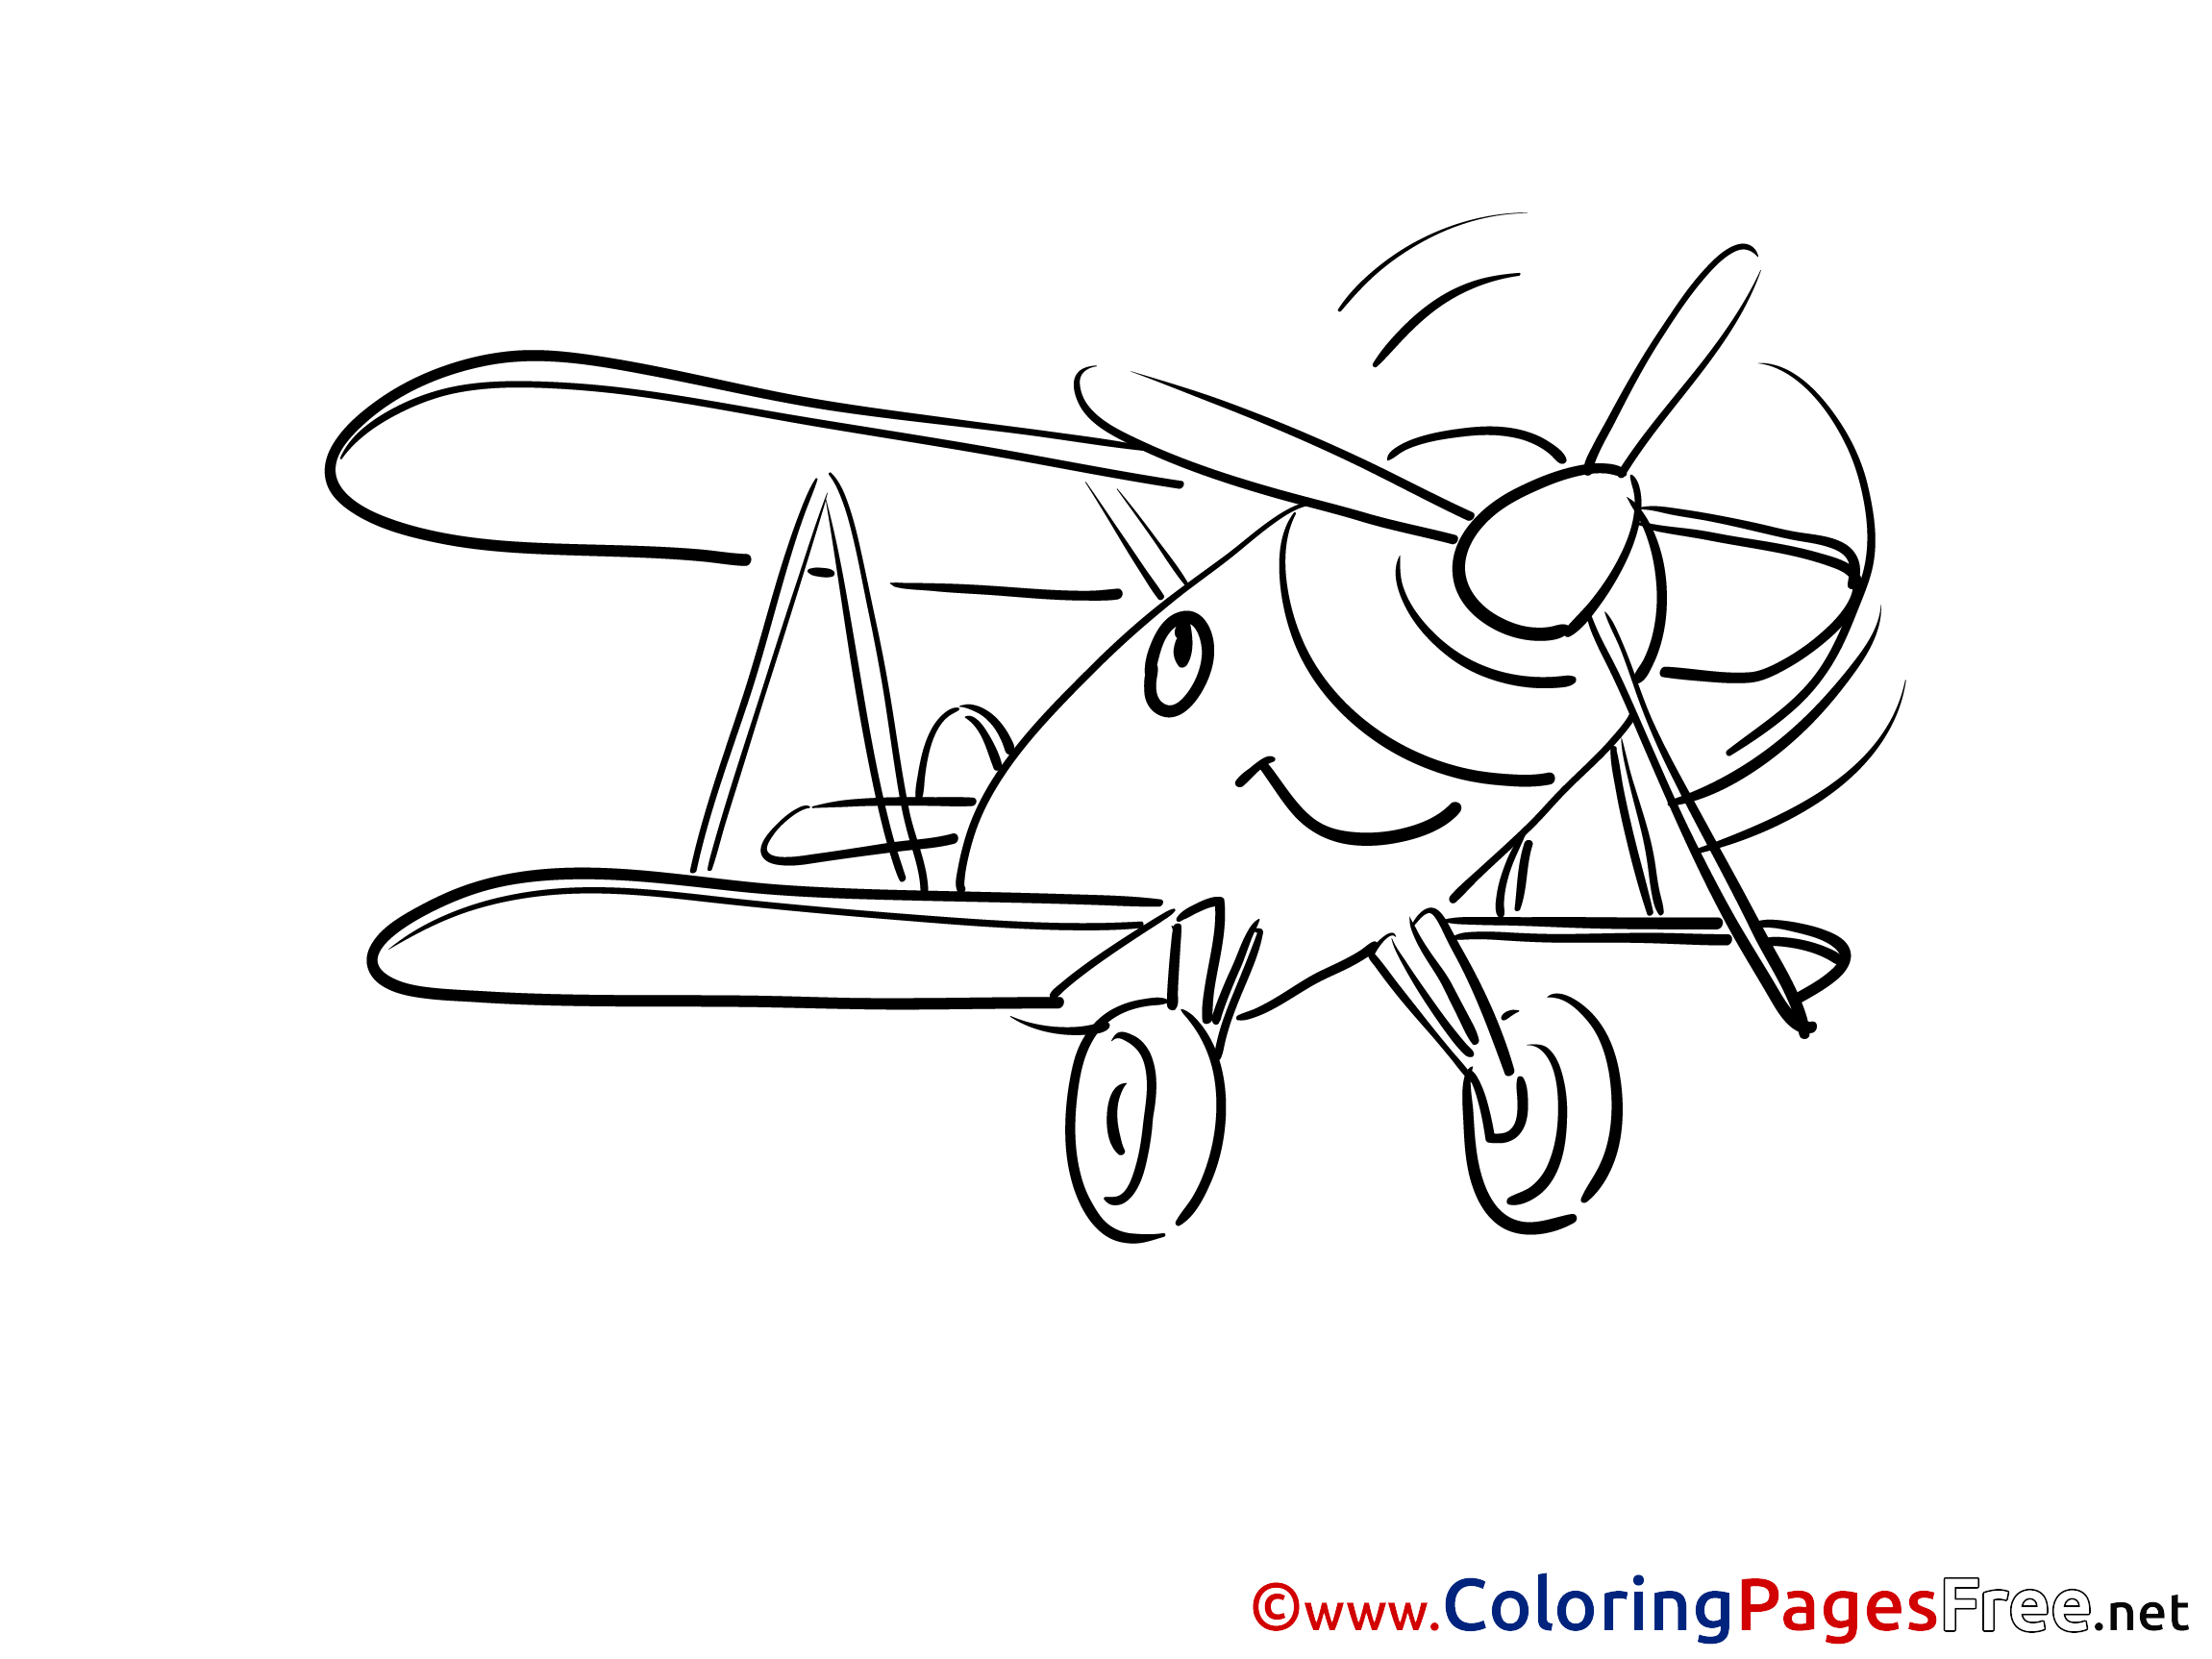 Voyage free printable Airplane Coloring Sheets